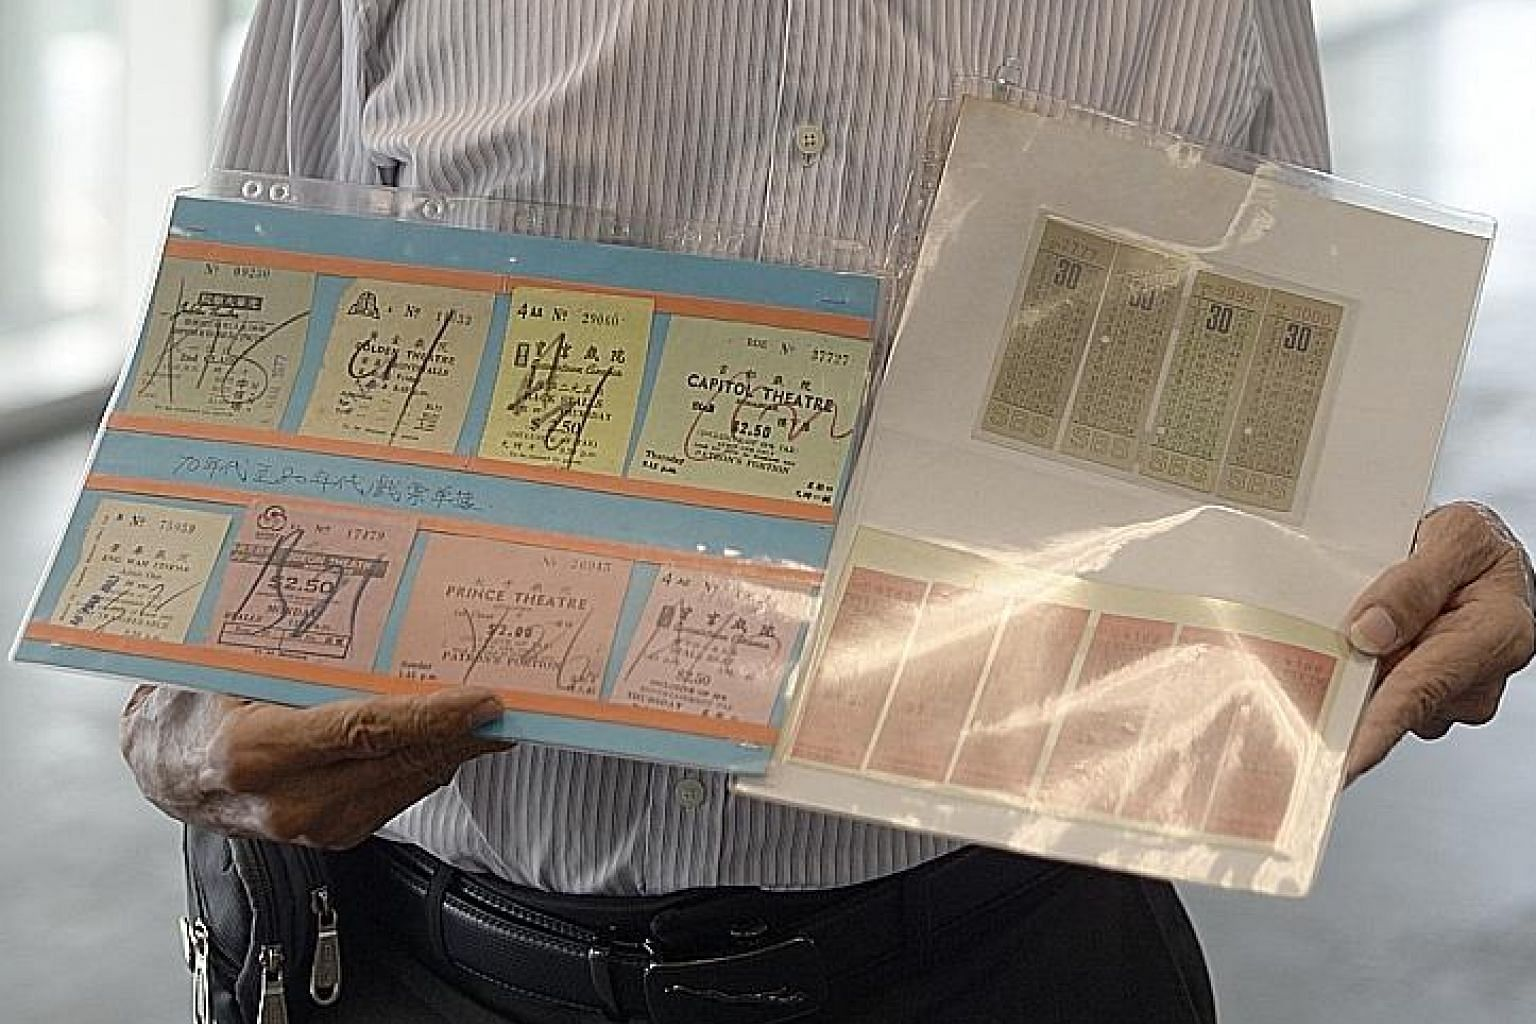 Besides bus tickets, Mr Sim Soo Tee also gave his collection of movie tickets (far left) from the 1970s and 1980s, issued by cinemas such as Odeon, Prince and Jubilee.